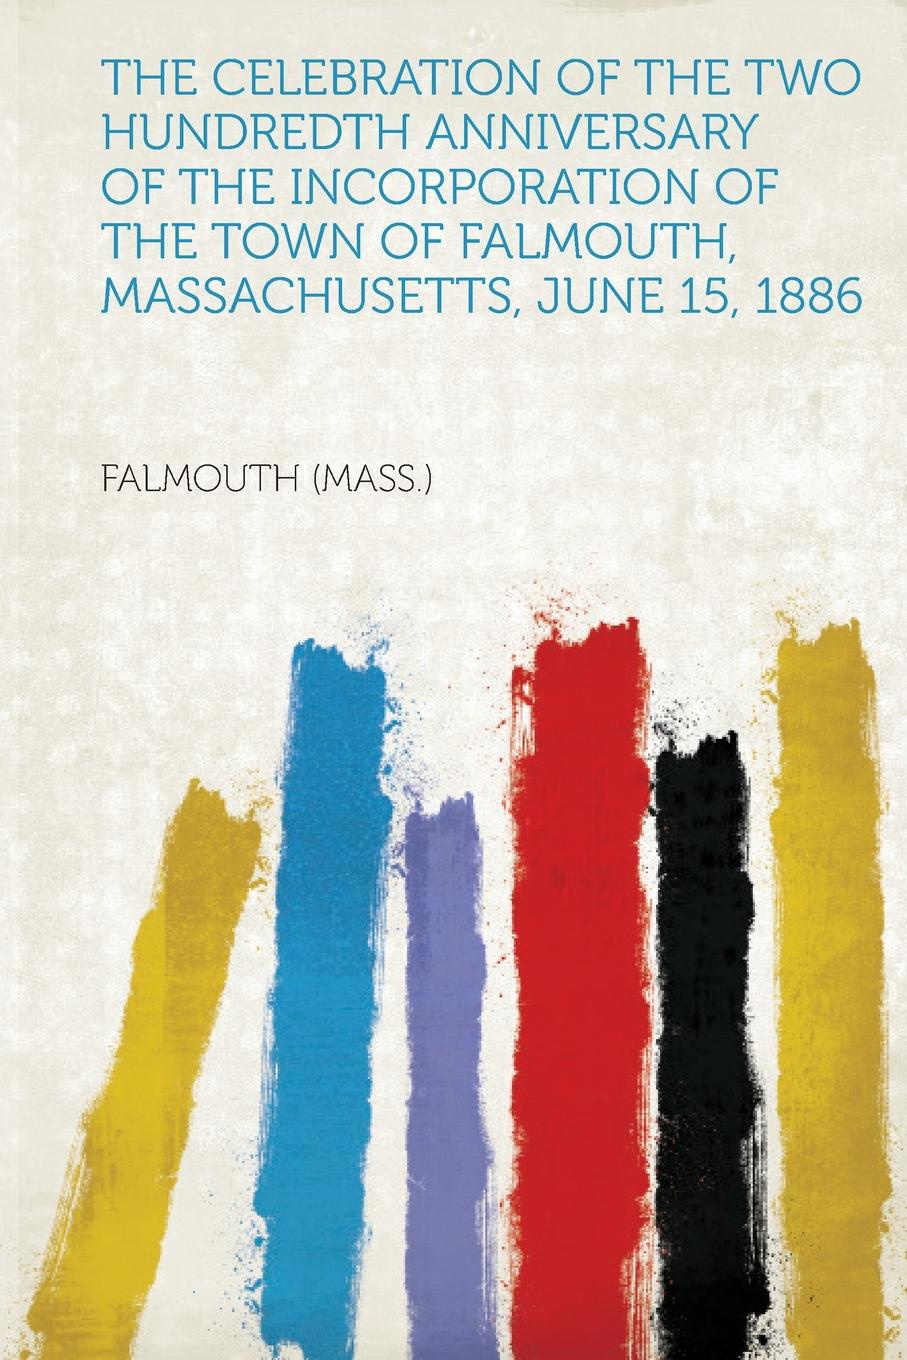 Falmouth (Mass ). The Celebration of the Two Hundredth Anniversary Incorporation Town Falmouth, Massachusetts, June 15, 1886